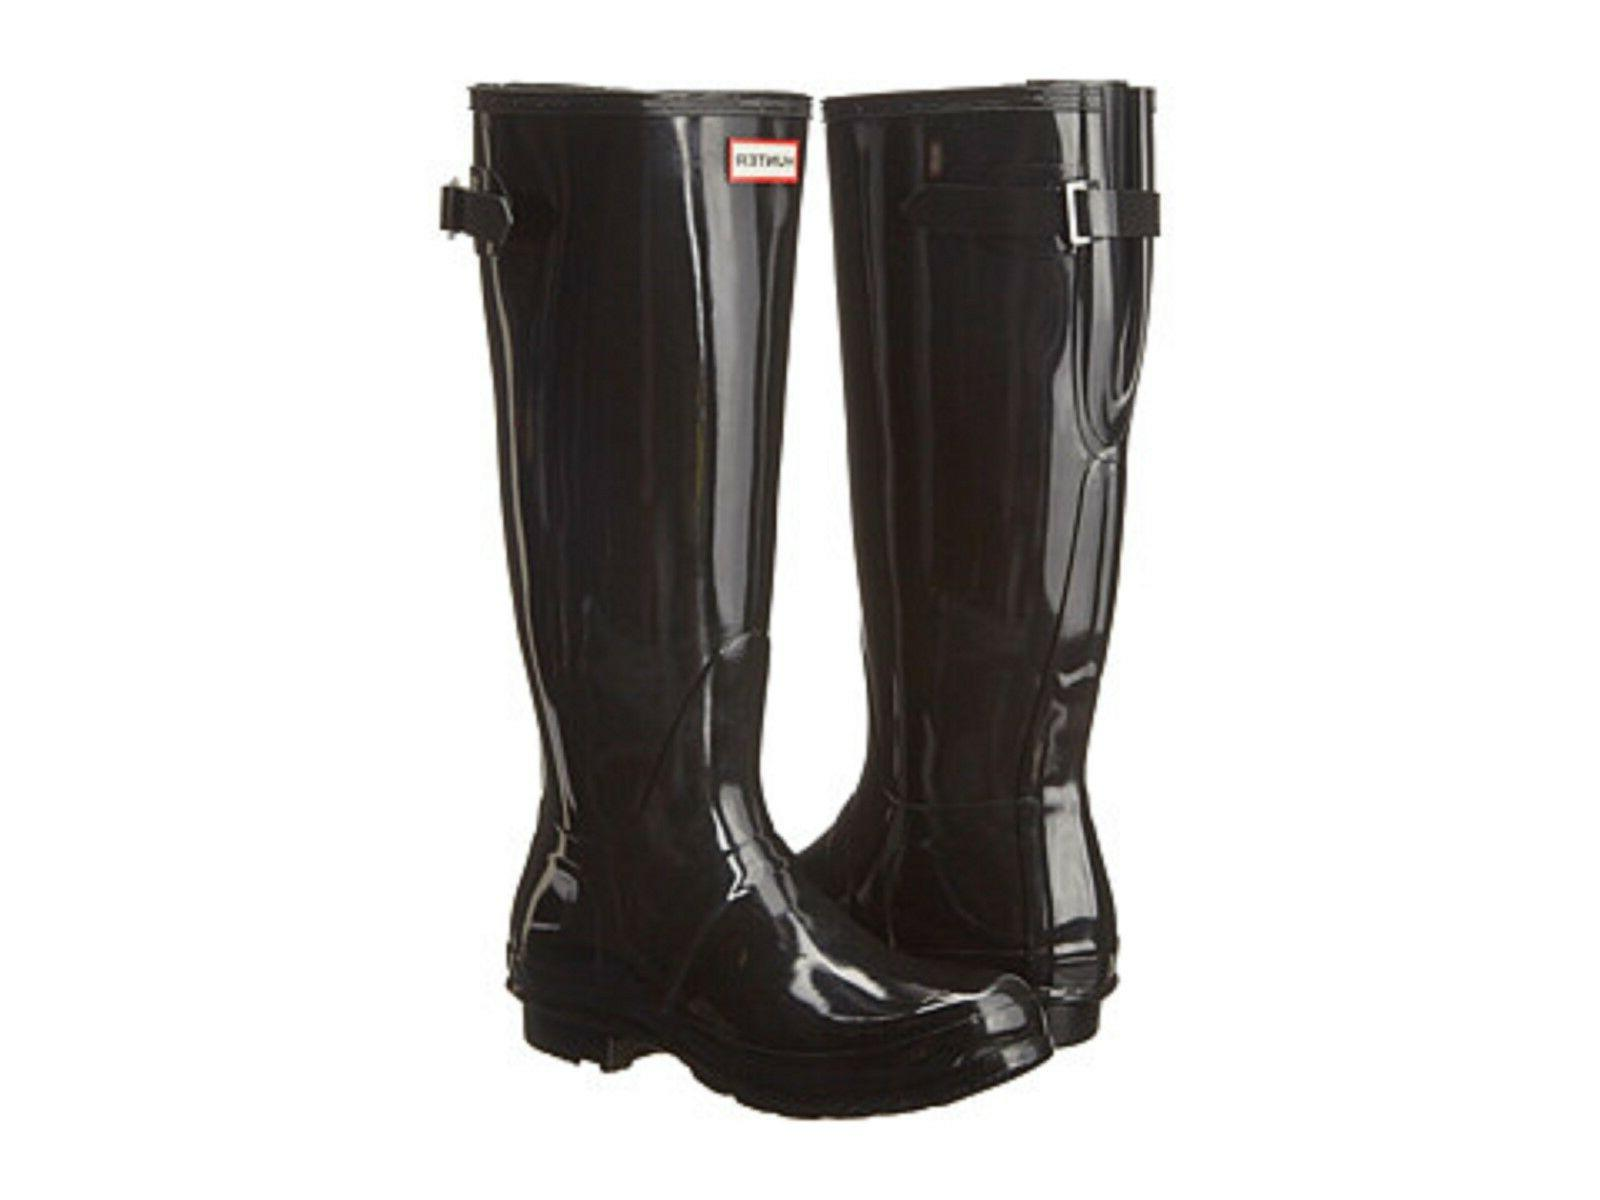 HUNTER ORIGINAL BACK ADJUSTABLE BLACK GLOSS RAIN BOOTS WOMEN